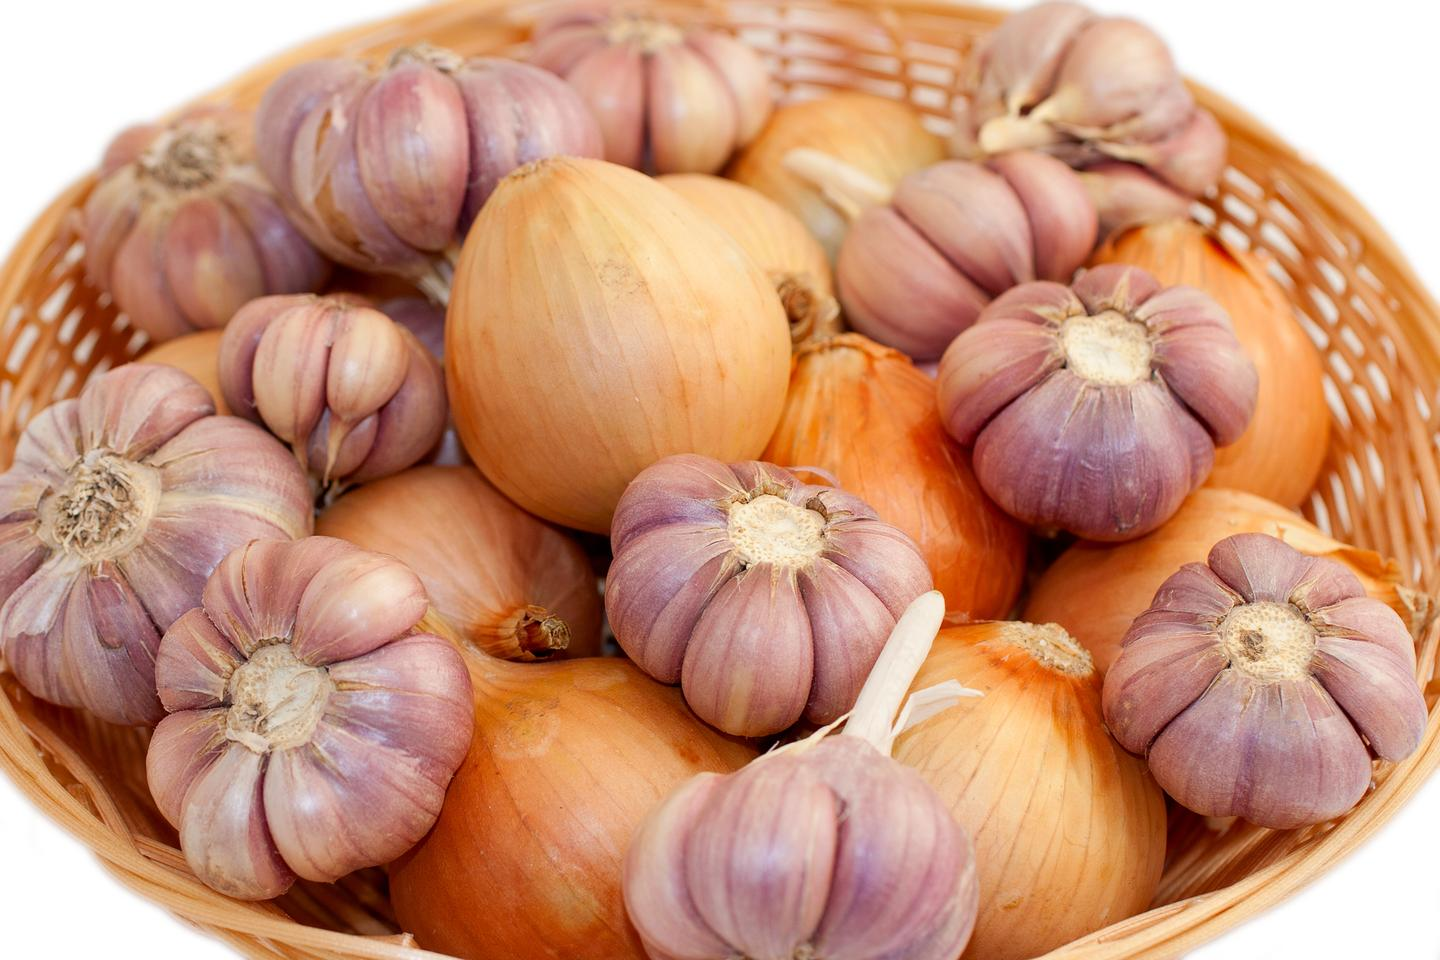 Onion and garlic waste might be utilized to mop-up heavy metal pollutants (Photo: Shutterstock)